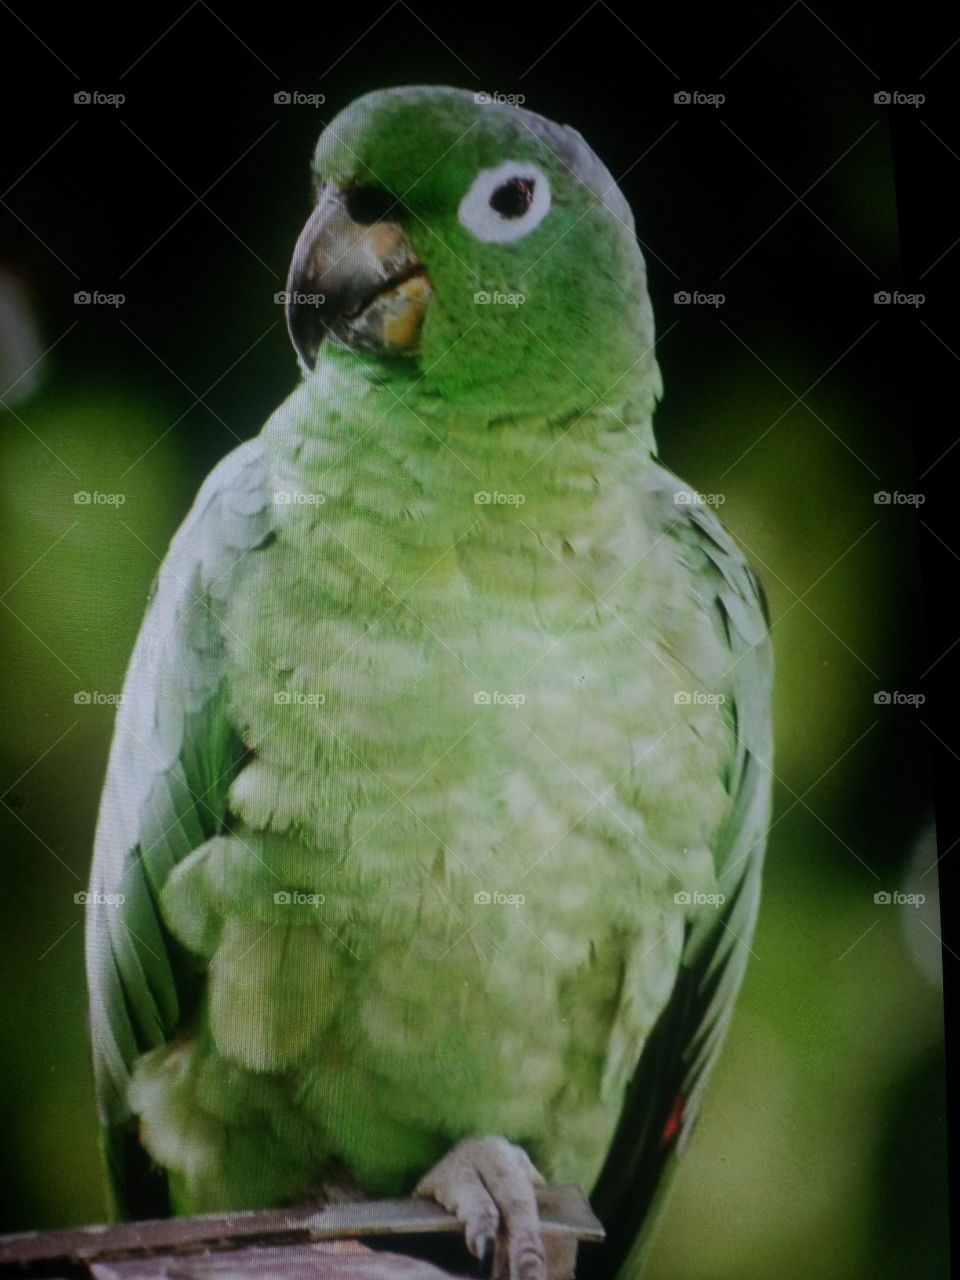 green parrot. green parrot sitting on a branch of tree